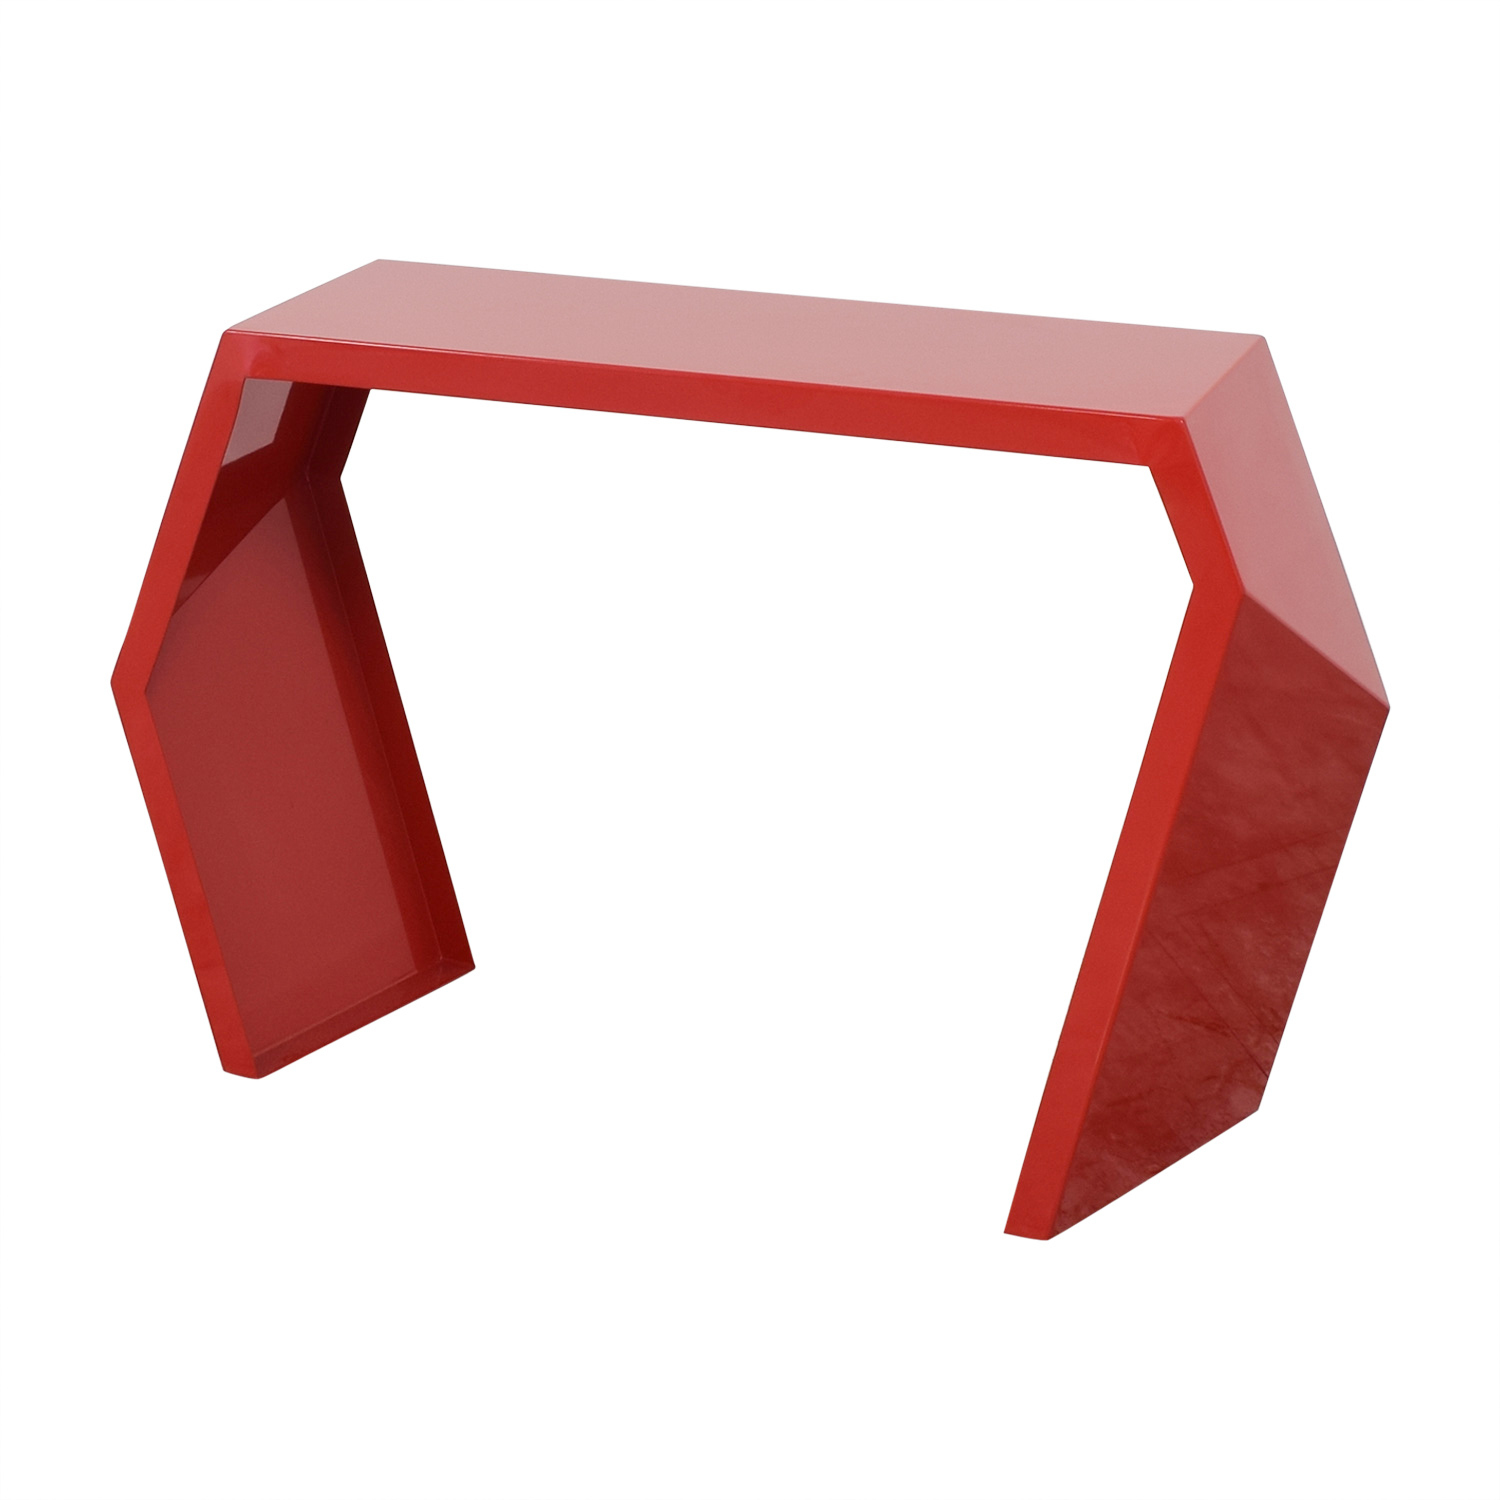 Arktura Arktura Pac Console Table dimensions